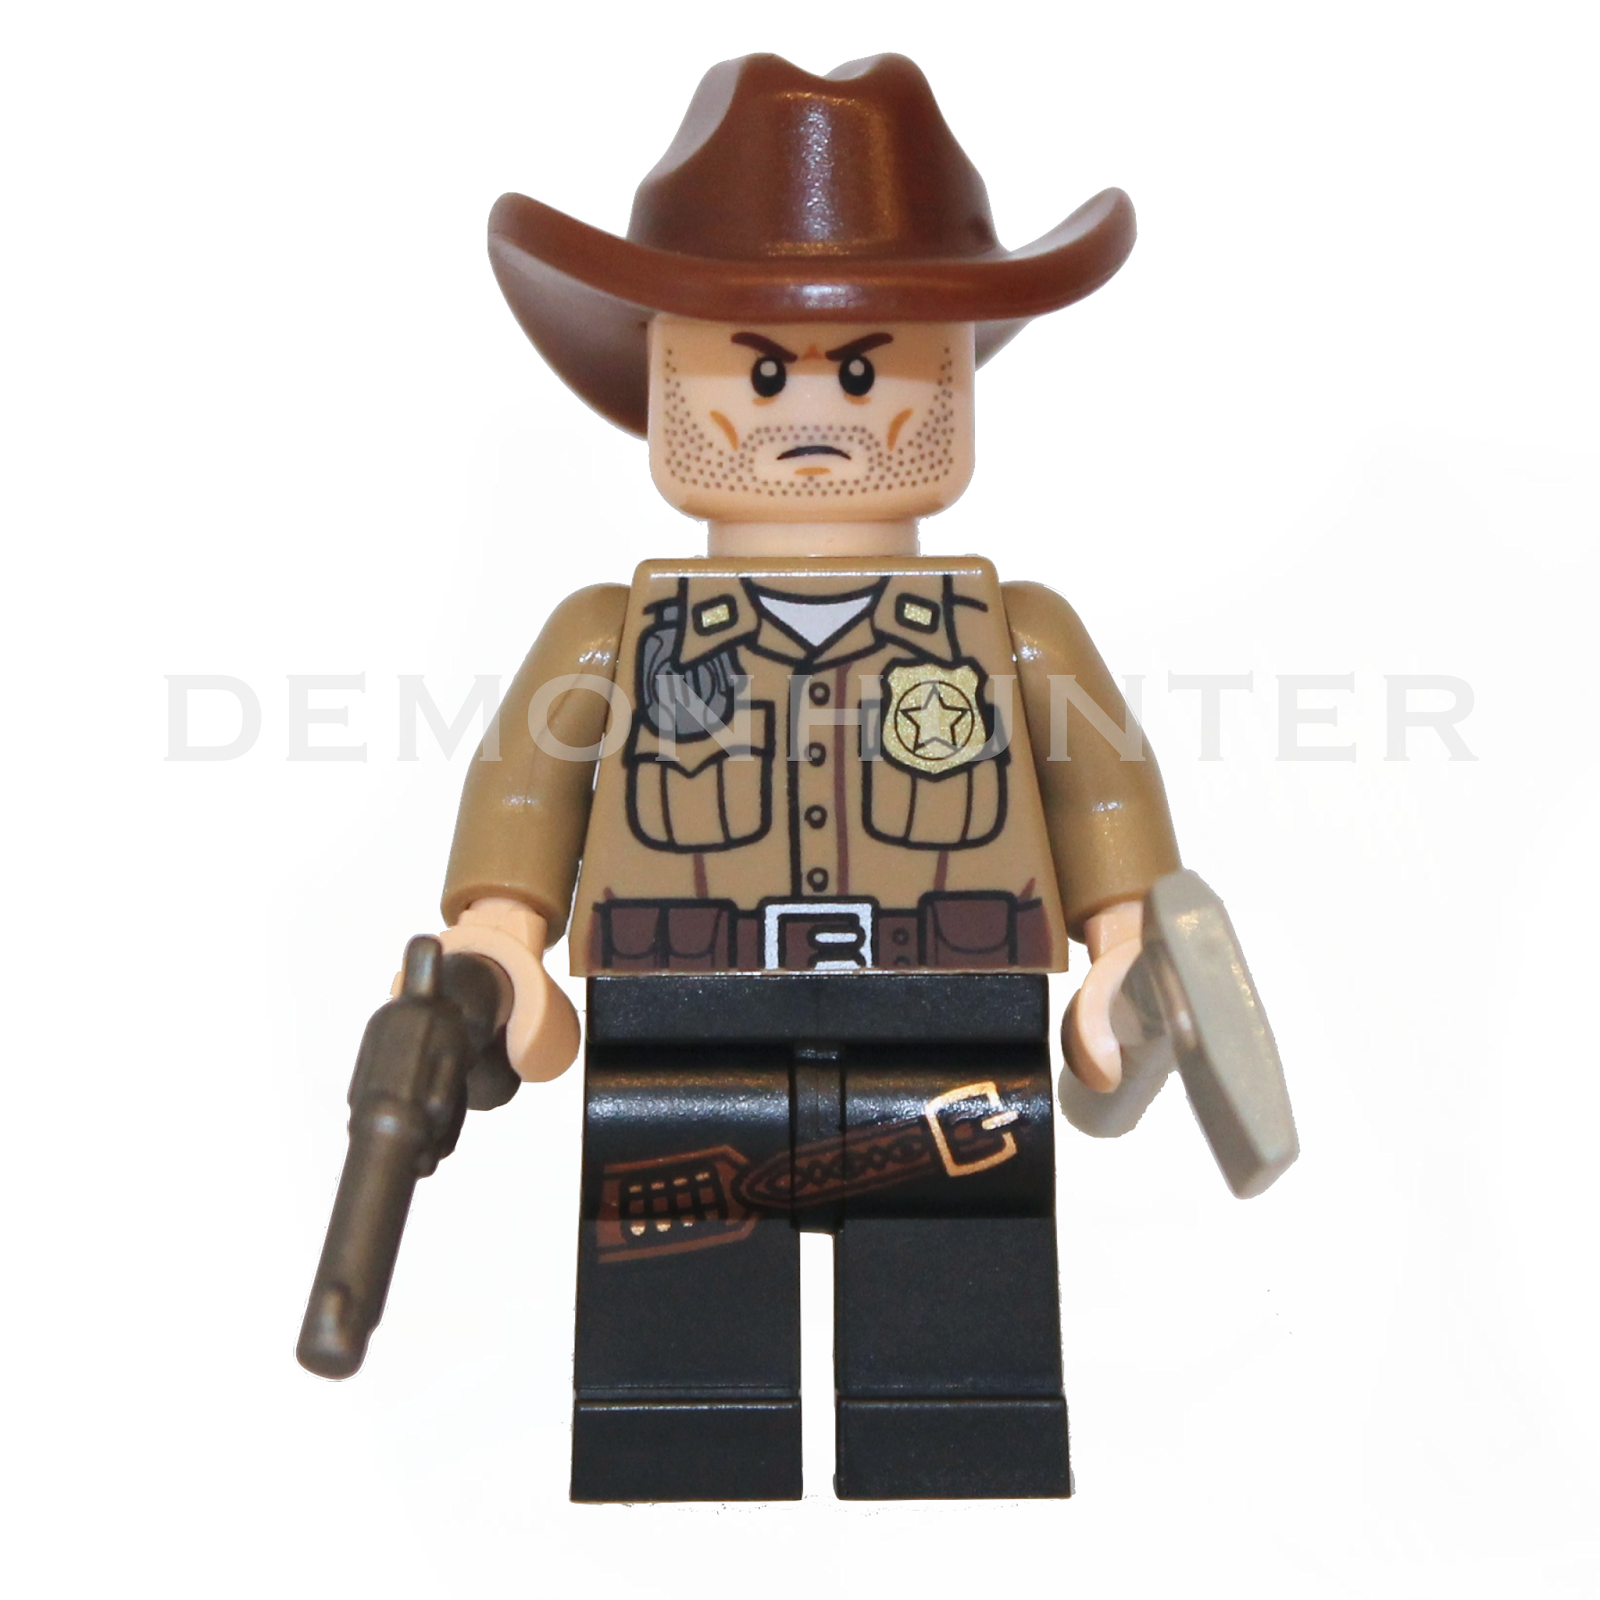 Lego Walking Dead,Lego Rick The Walking Dead, Custom Lego, Walking Dead Lego, Rick Grimes, The Walking Dead, Rick Grimes Lego, Lego Blog